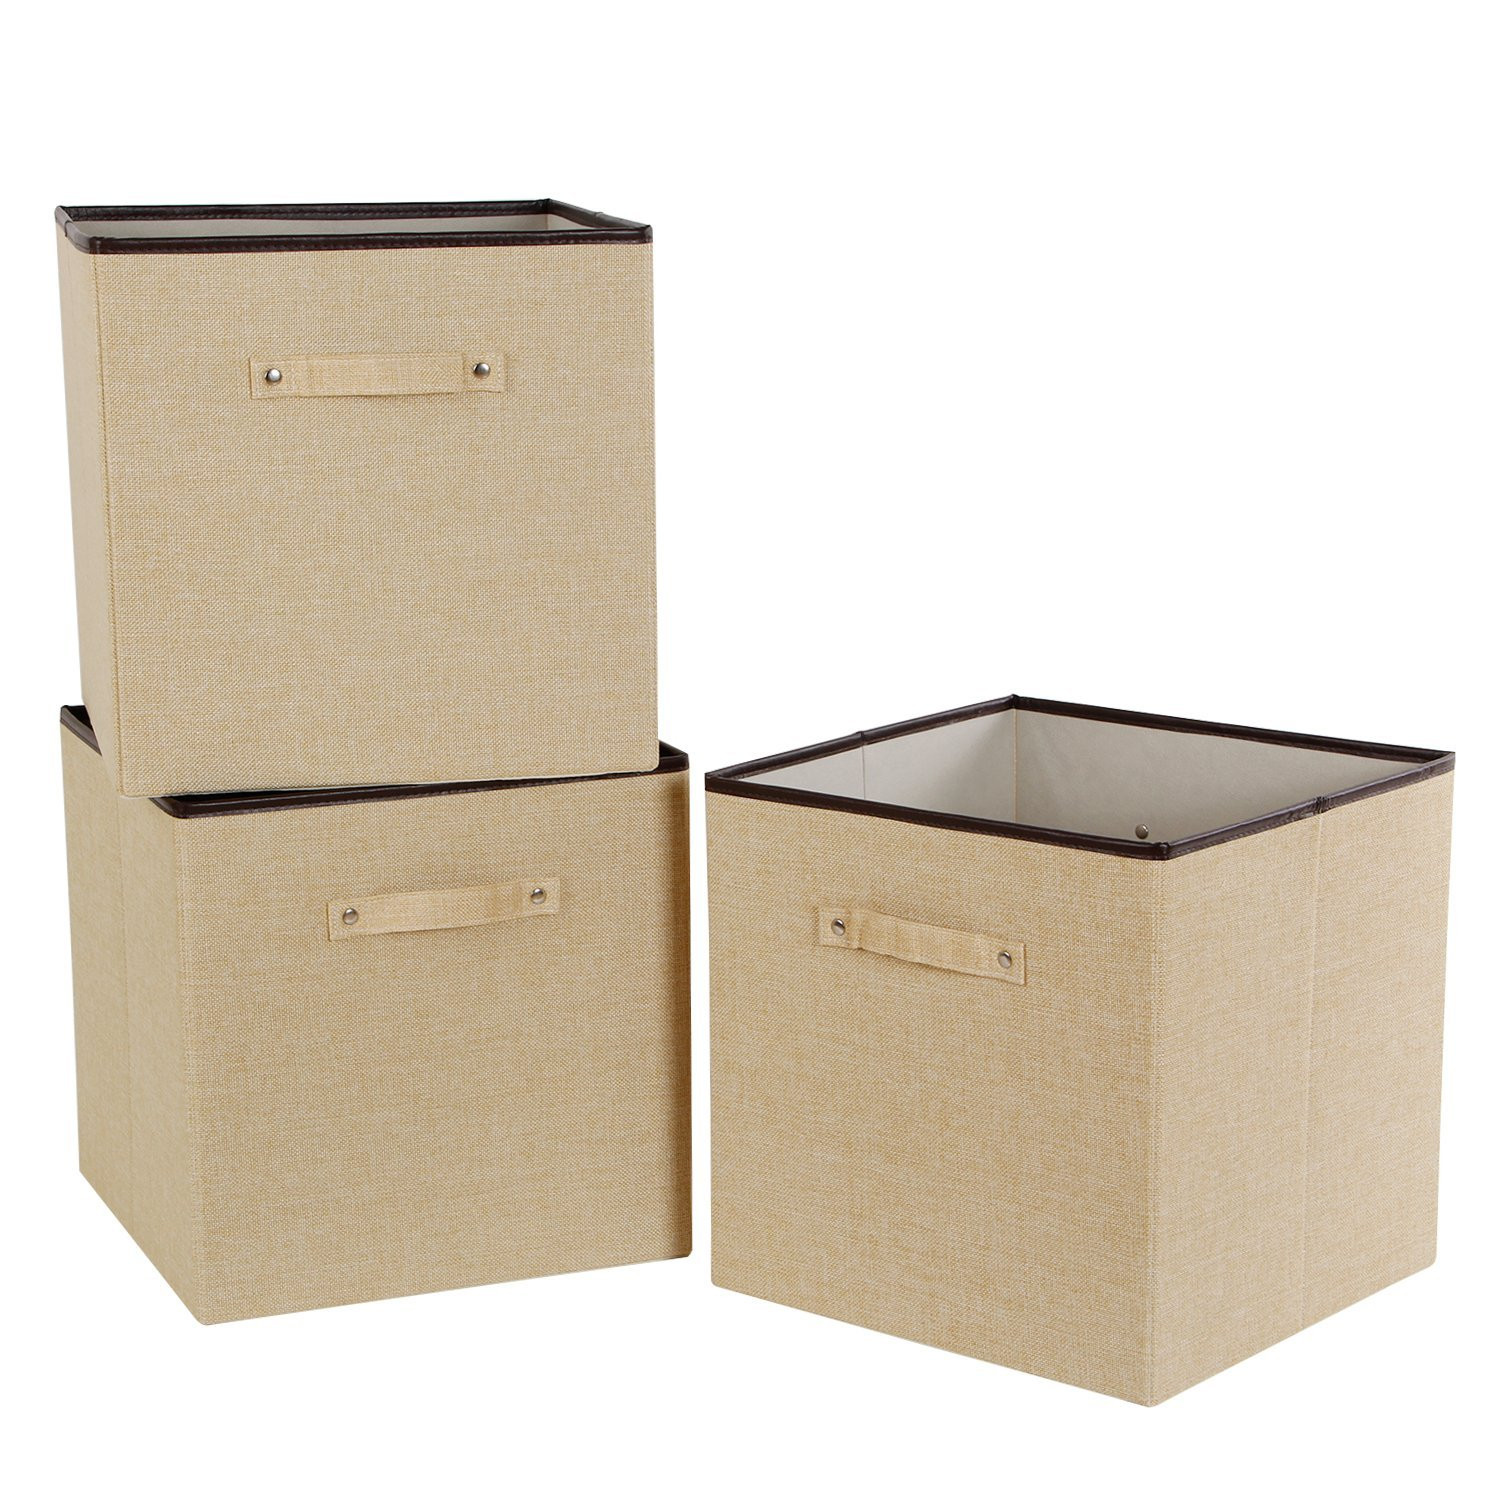 Lifewit 3pcs Storage Box Foldable Cube Basket Fabric Storage Cubes  Container Bins Organizer Large